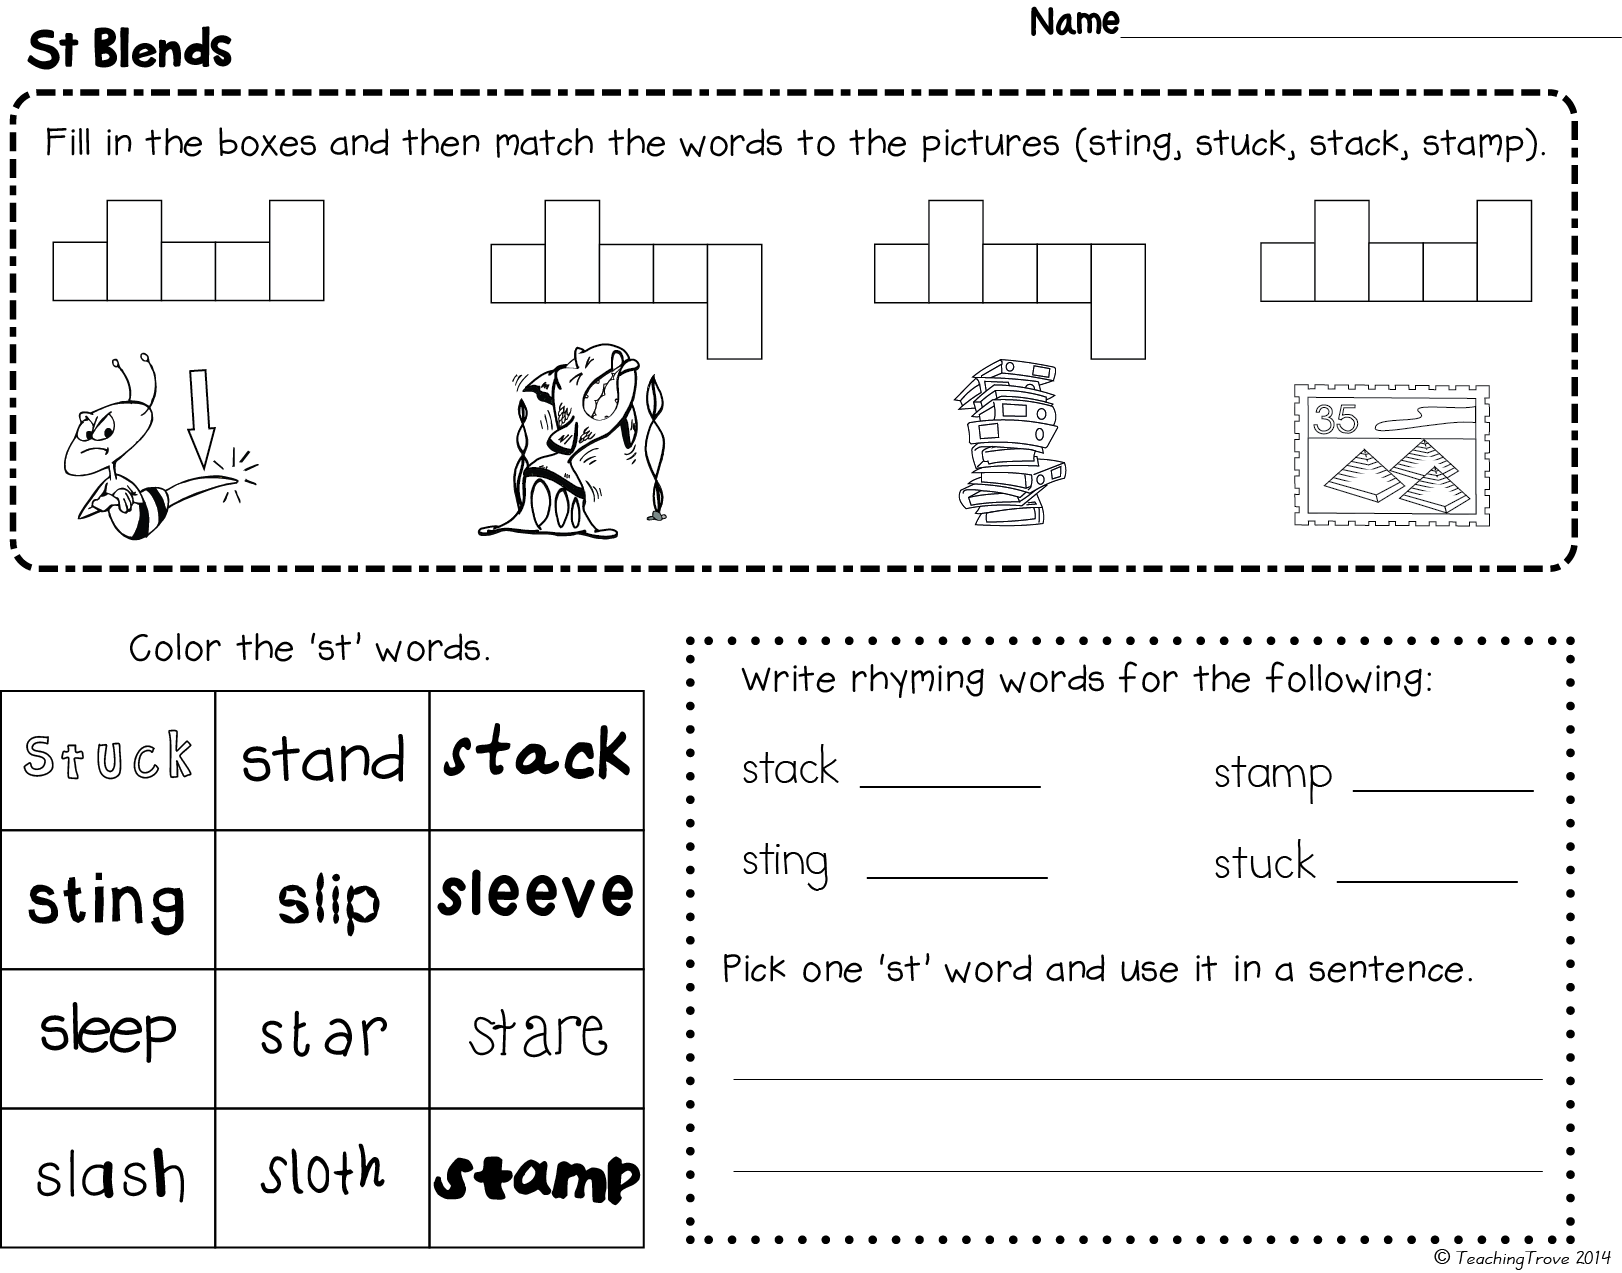 Worksheet On Consonant Blends